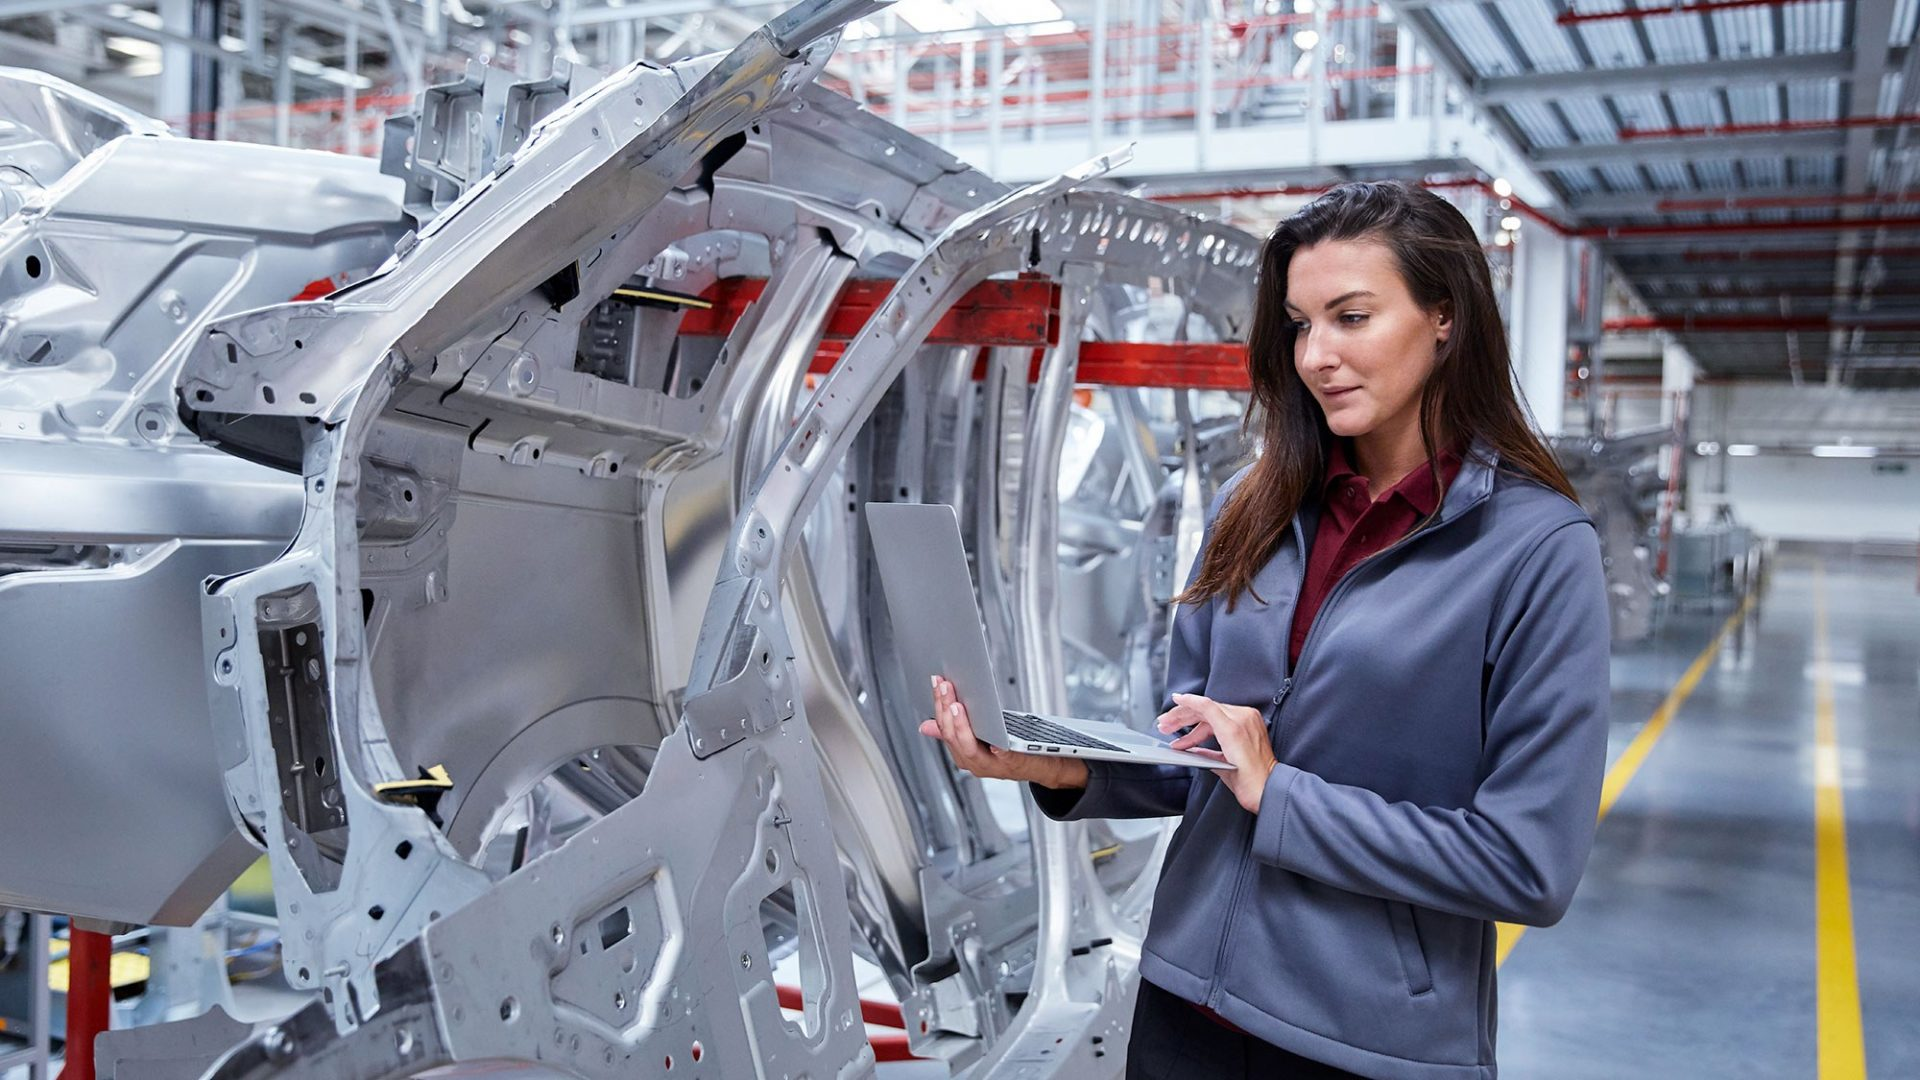 A photo of a lady inspecting a car manufacturing line